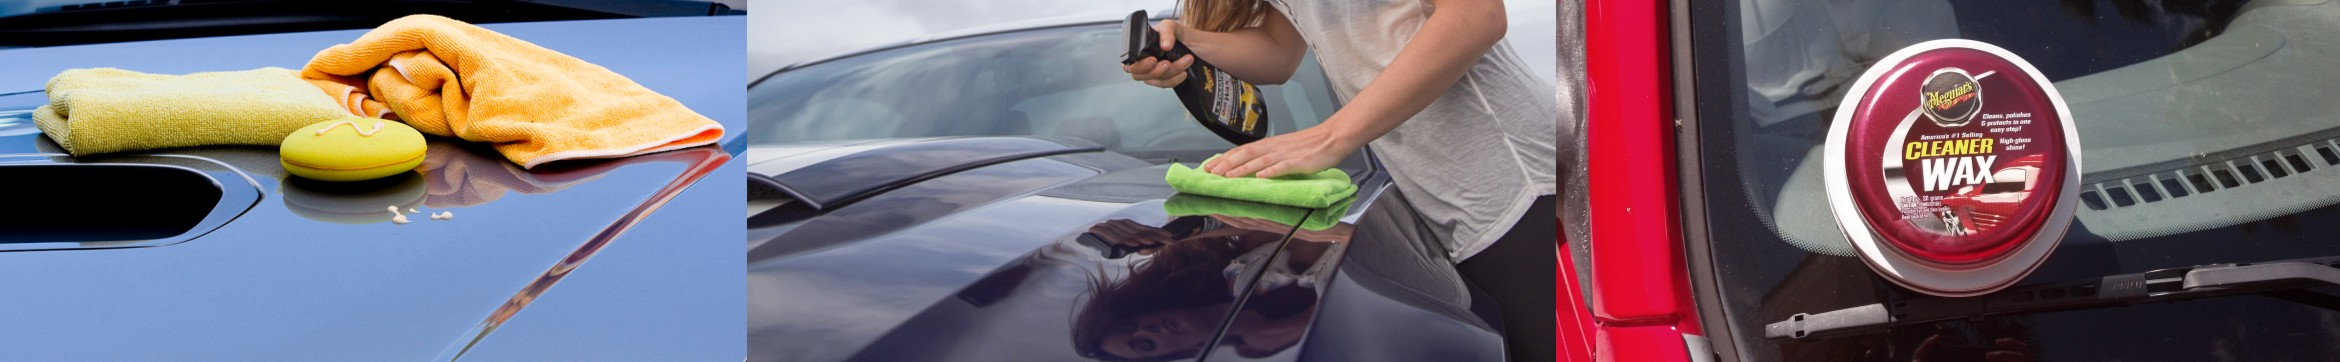 https://smitsgroup.co.nz/Content/SiteResources/PAGE/2712/brand_meguiars_product_tips_five_step_image7_@2x.jpg